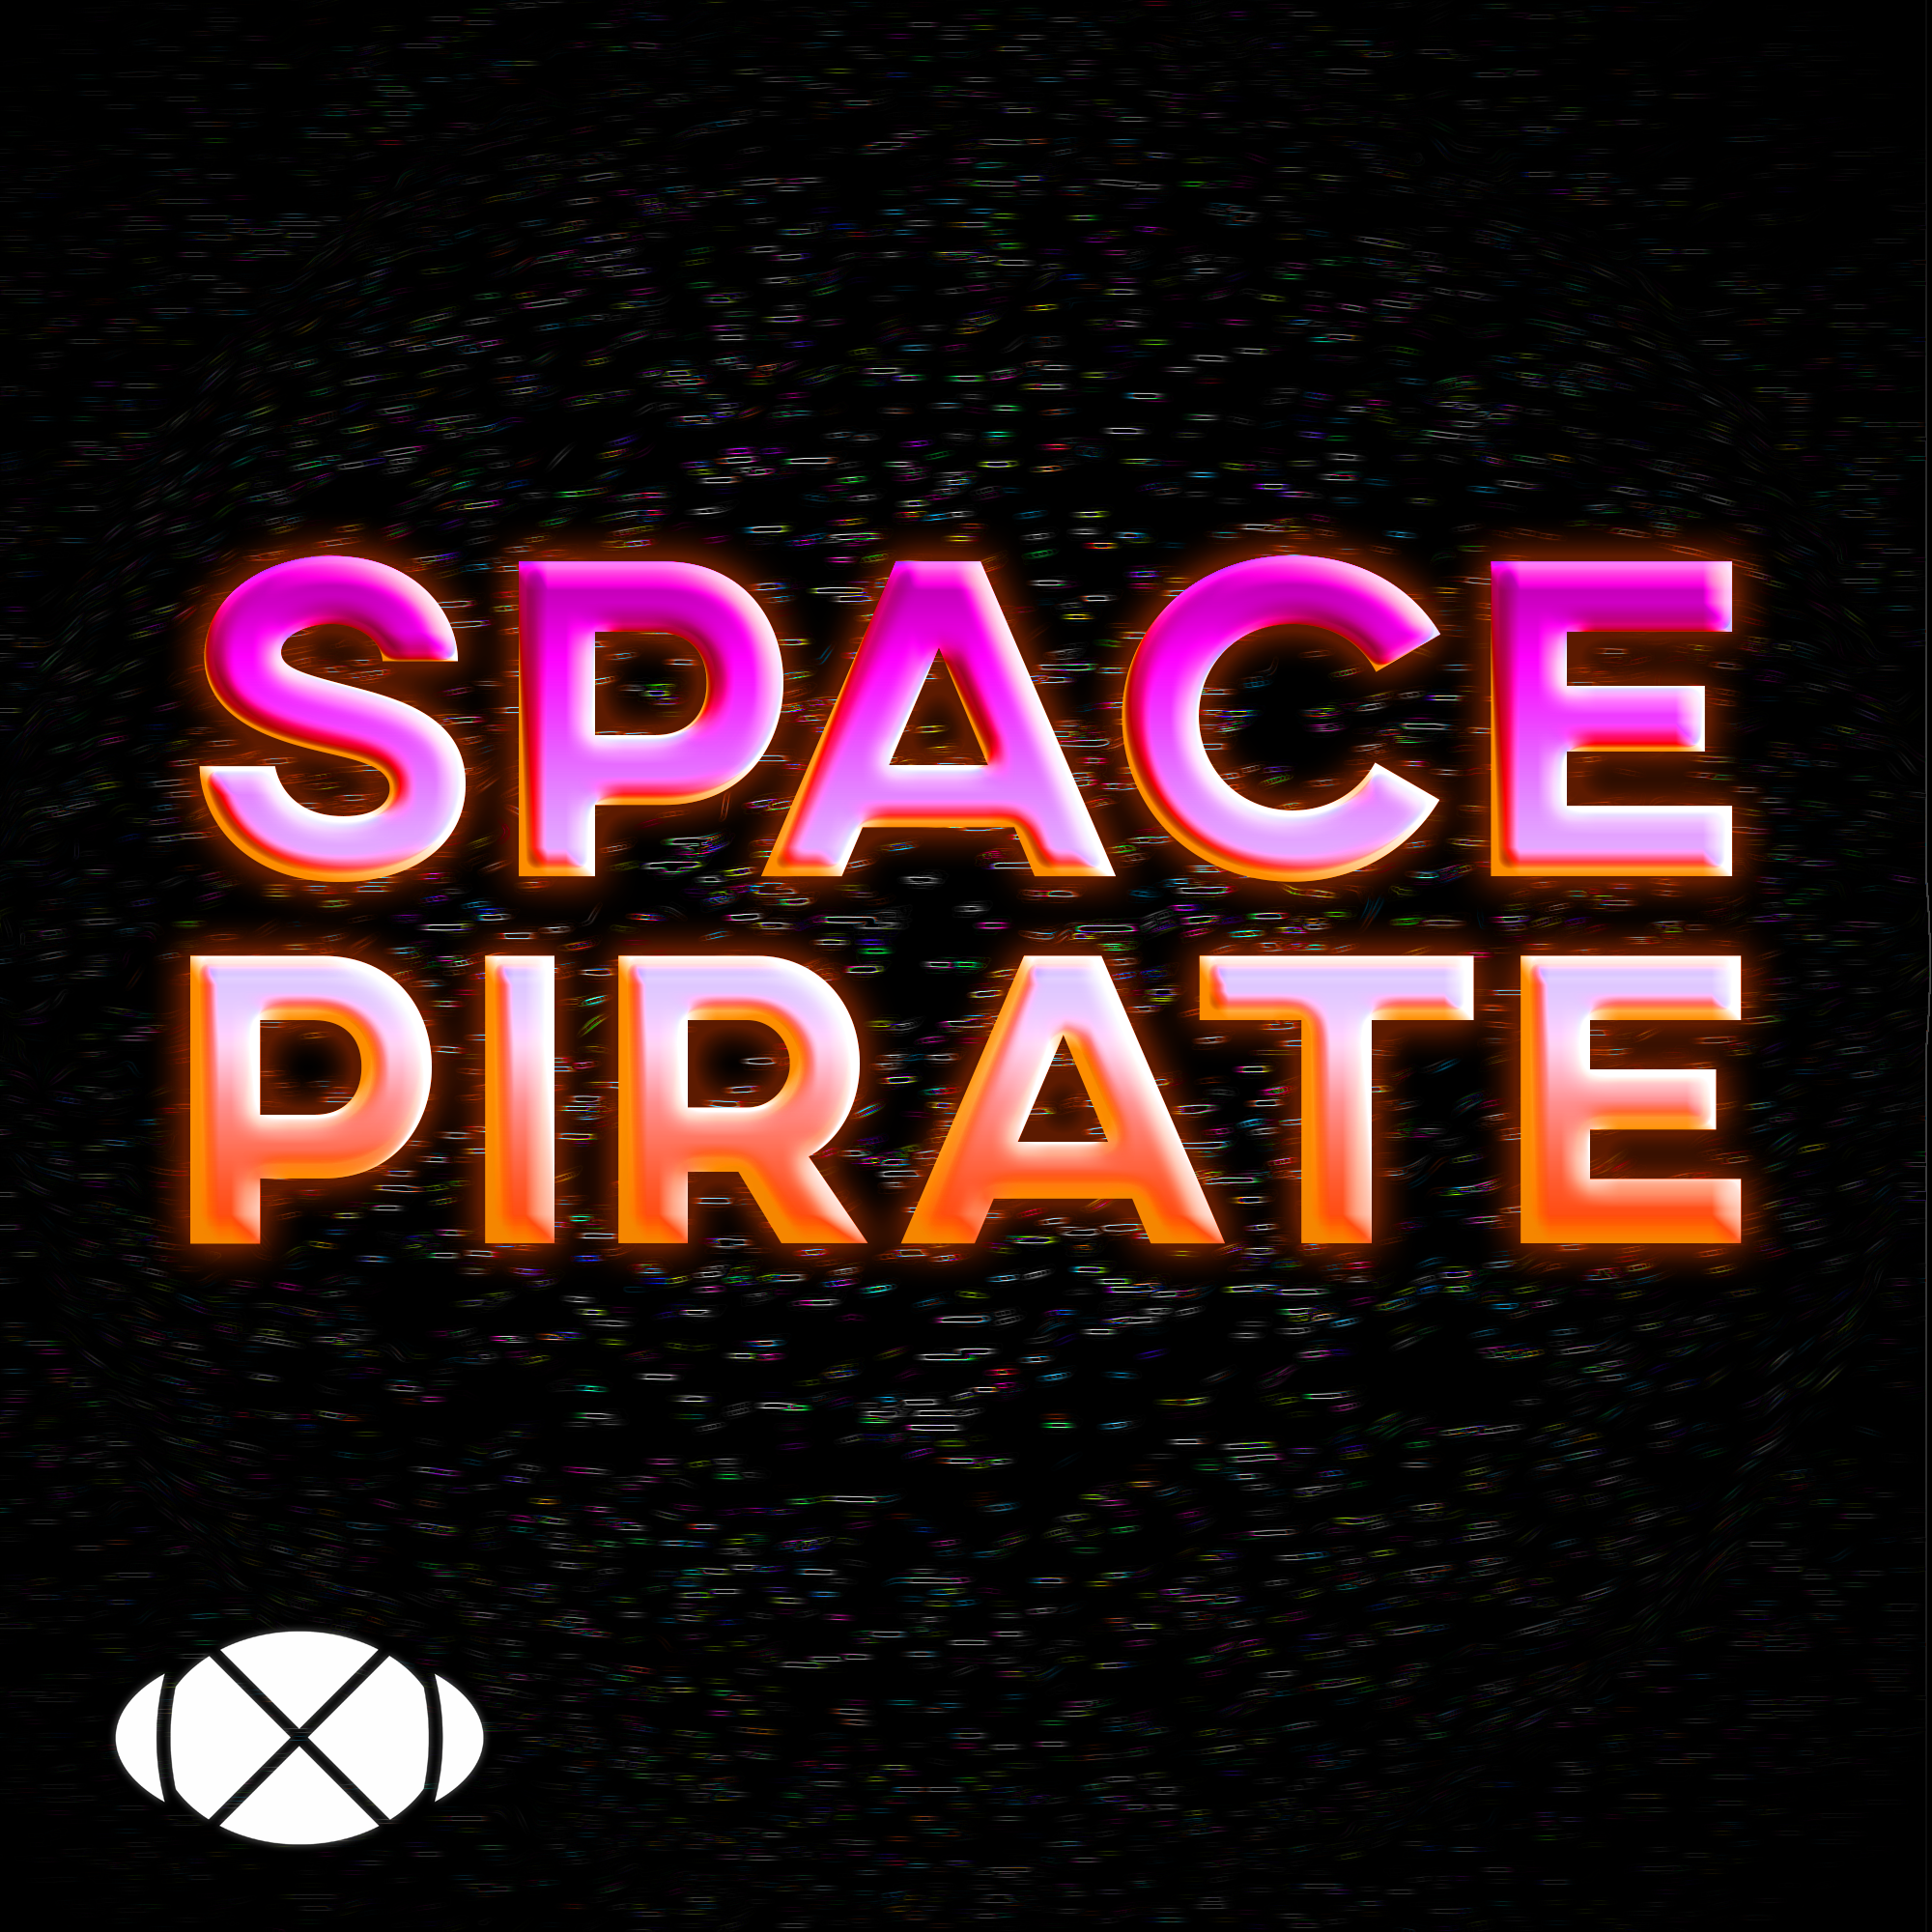 Space Pirate (Album) by Lead Zero Lemon - Free download on ToneDen